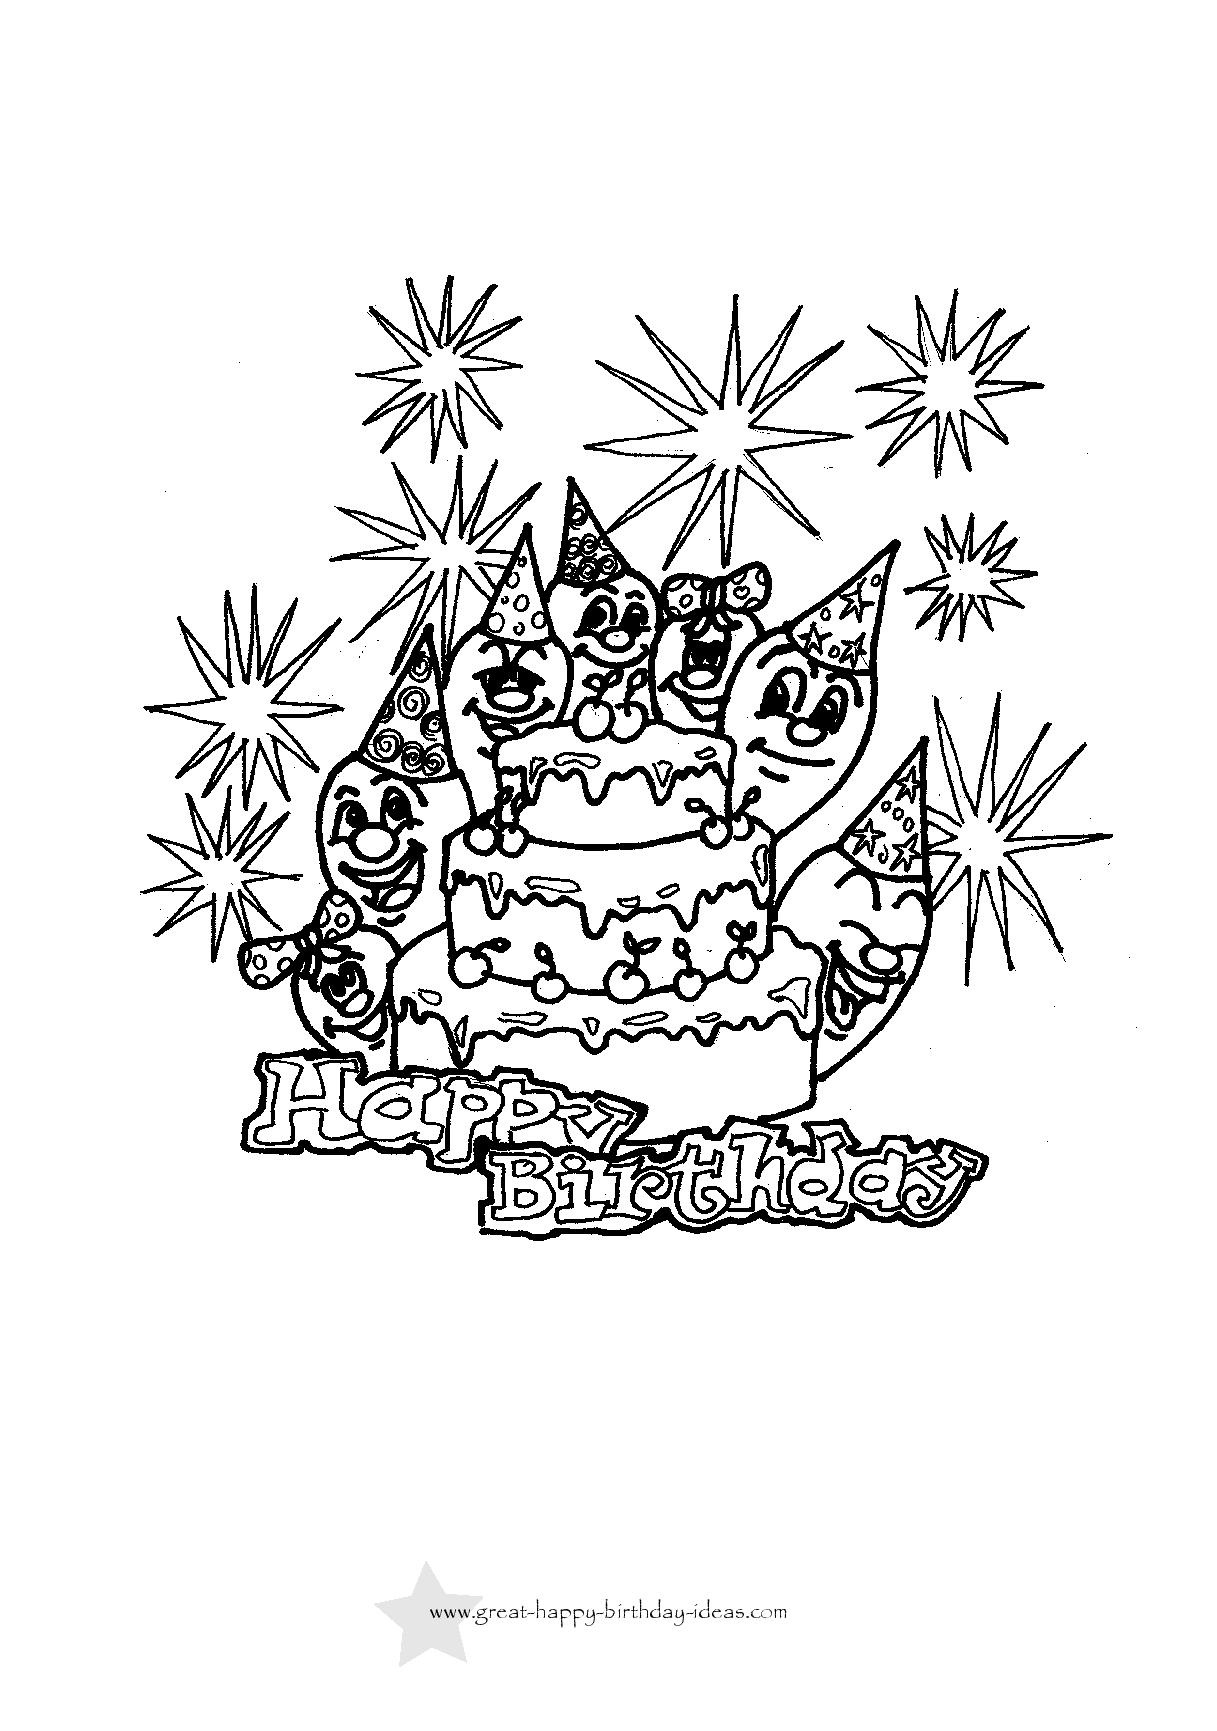 Birthday Coloring Cards Free Printable - Free Printable Birthday Cards To Color